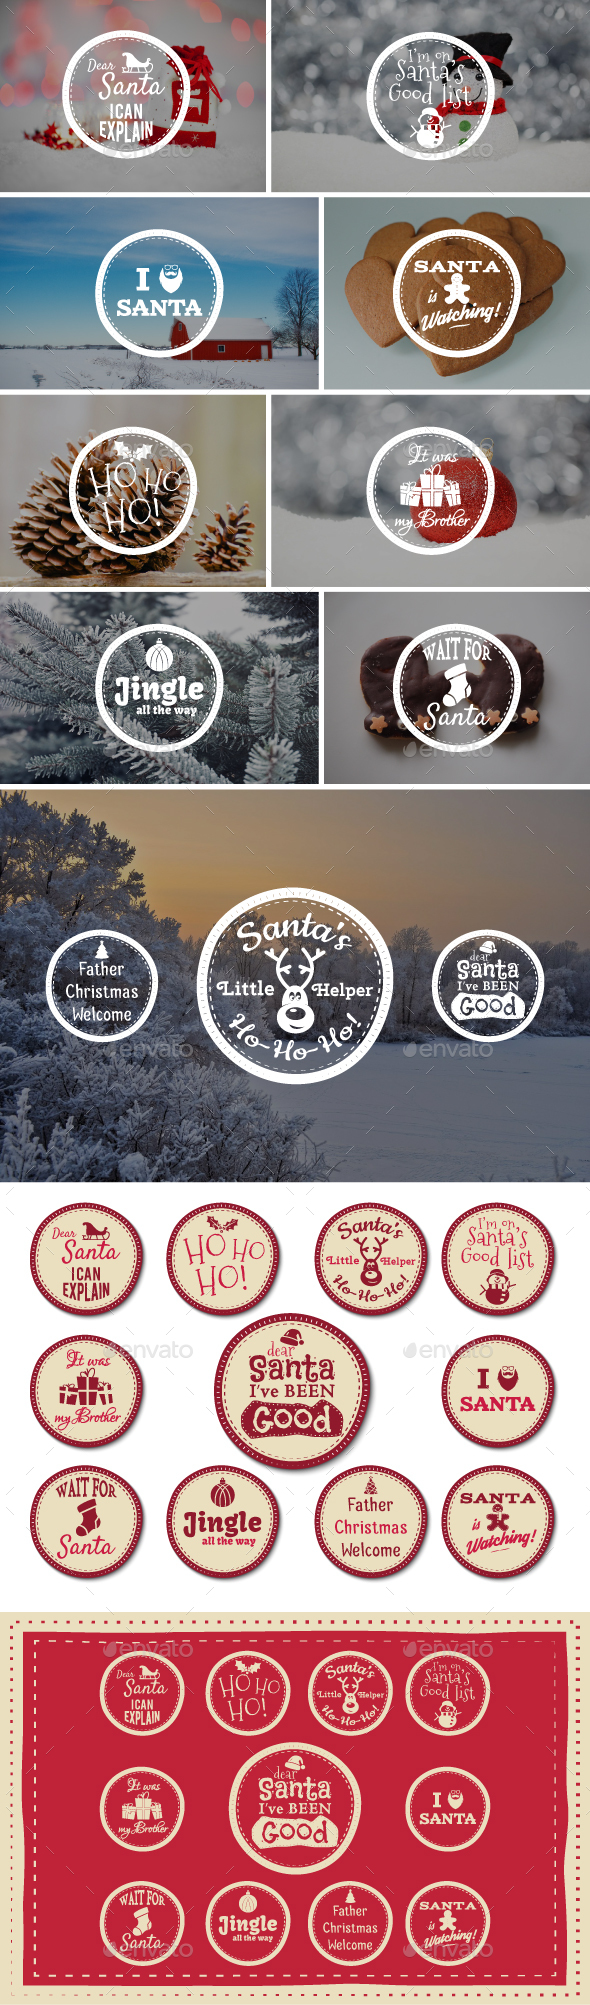 Funny Christmas Badges Collection - Badges & Stickers Web Elements